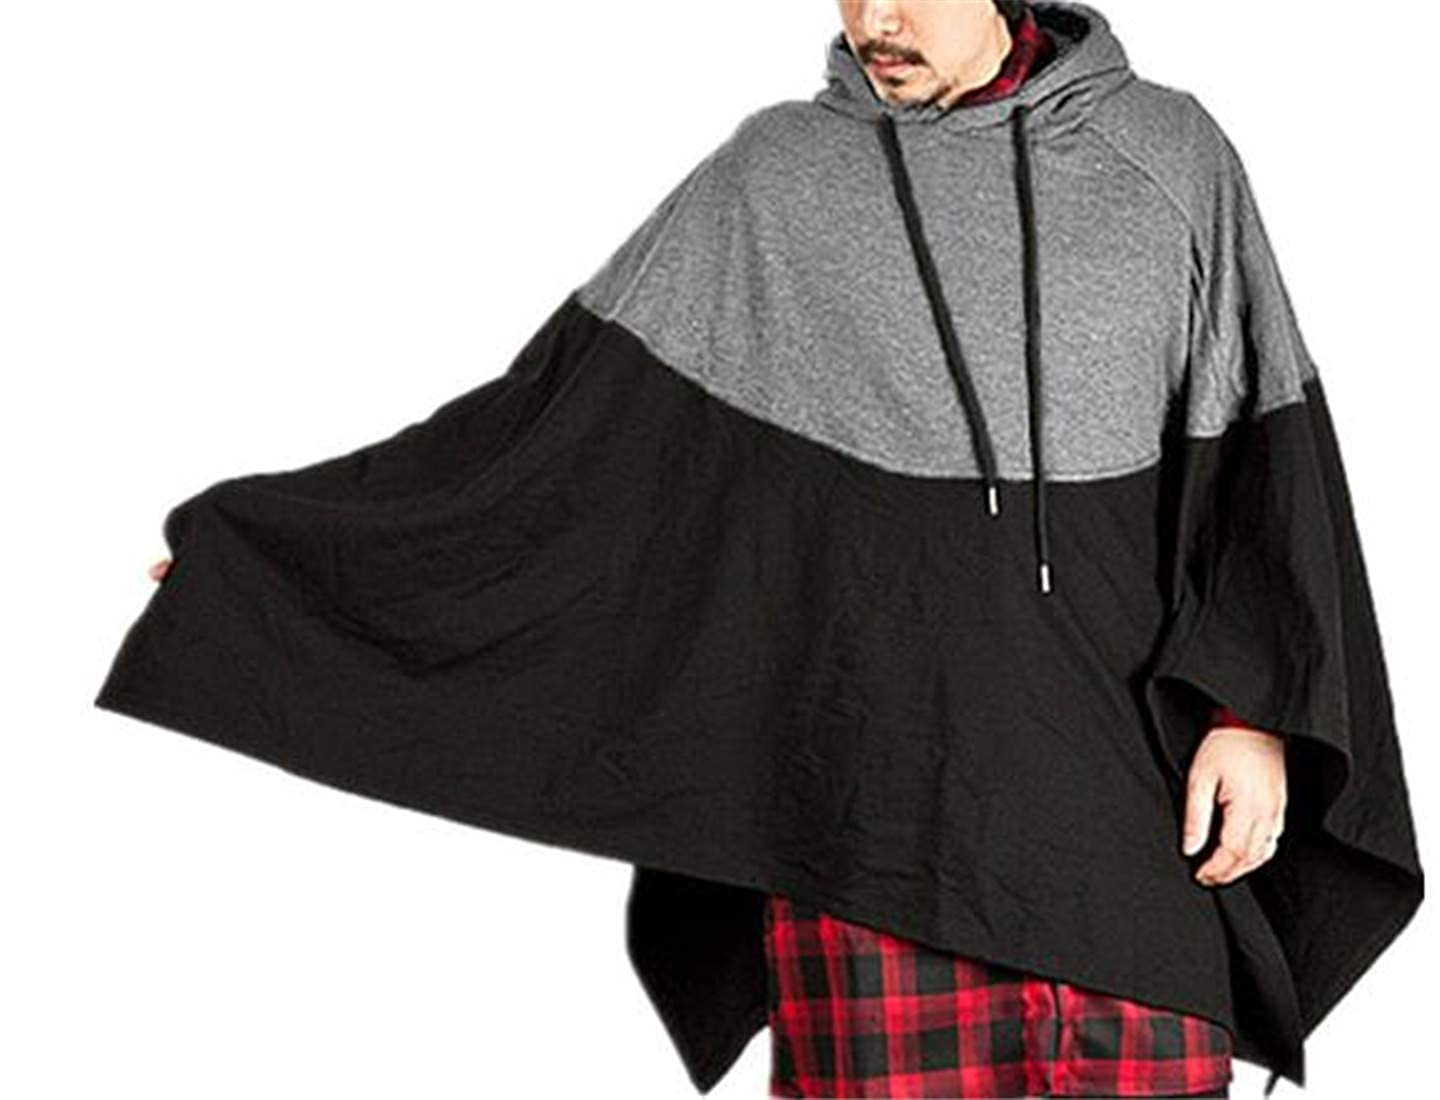 Nanquan Men Contrast Phocho Cape Batwing Sleeves Hooded Oversized Sweatshirt